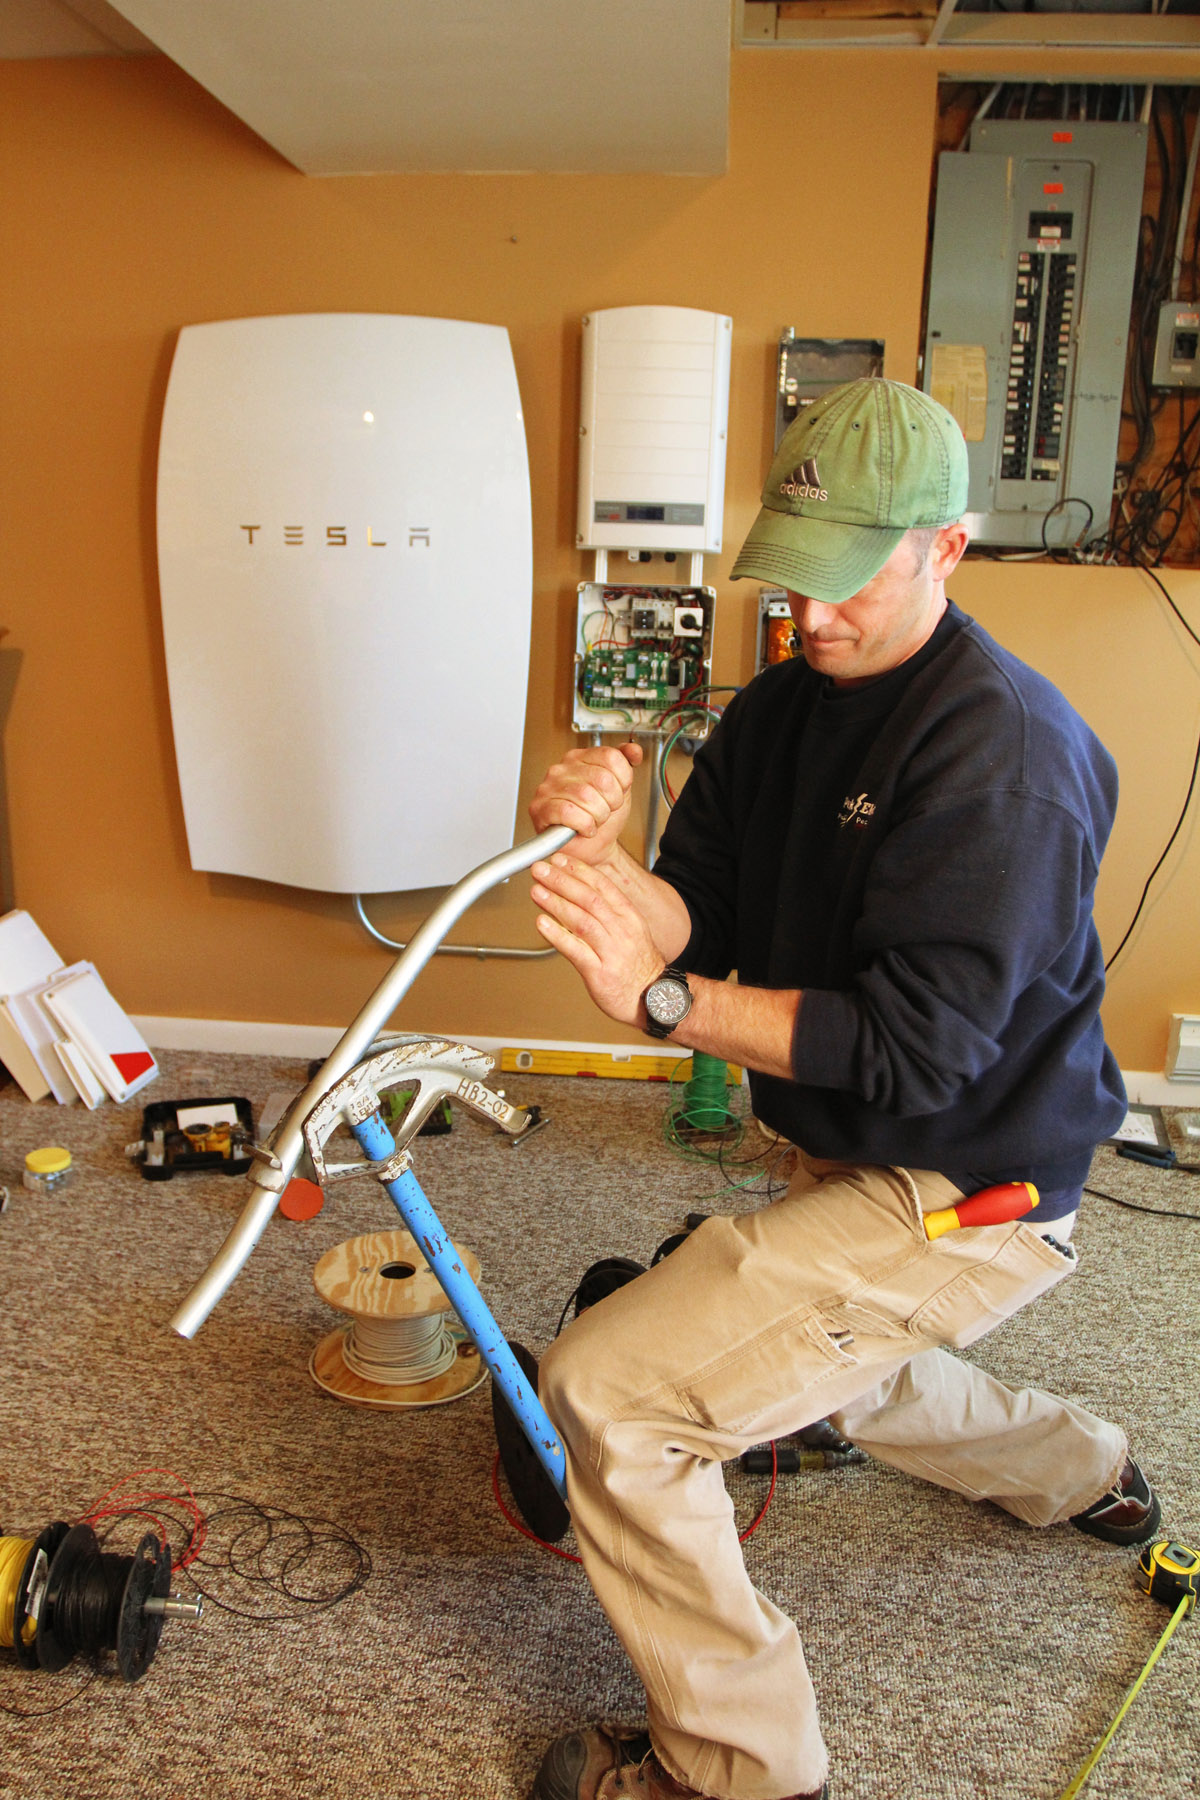 powerwall 2 wiring diagram pc power supply tesla not just for solar jlc online energy efficiency installing a